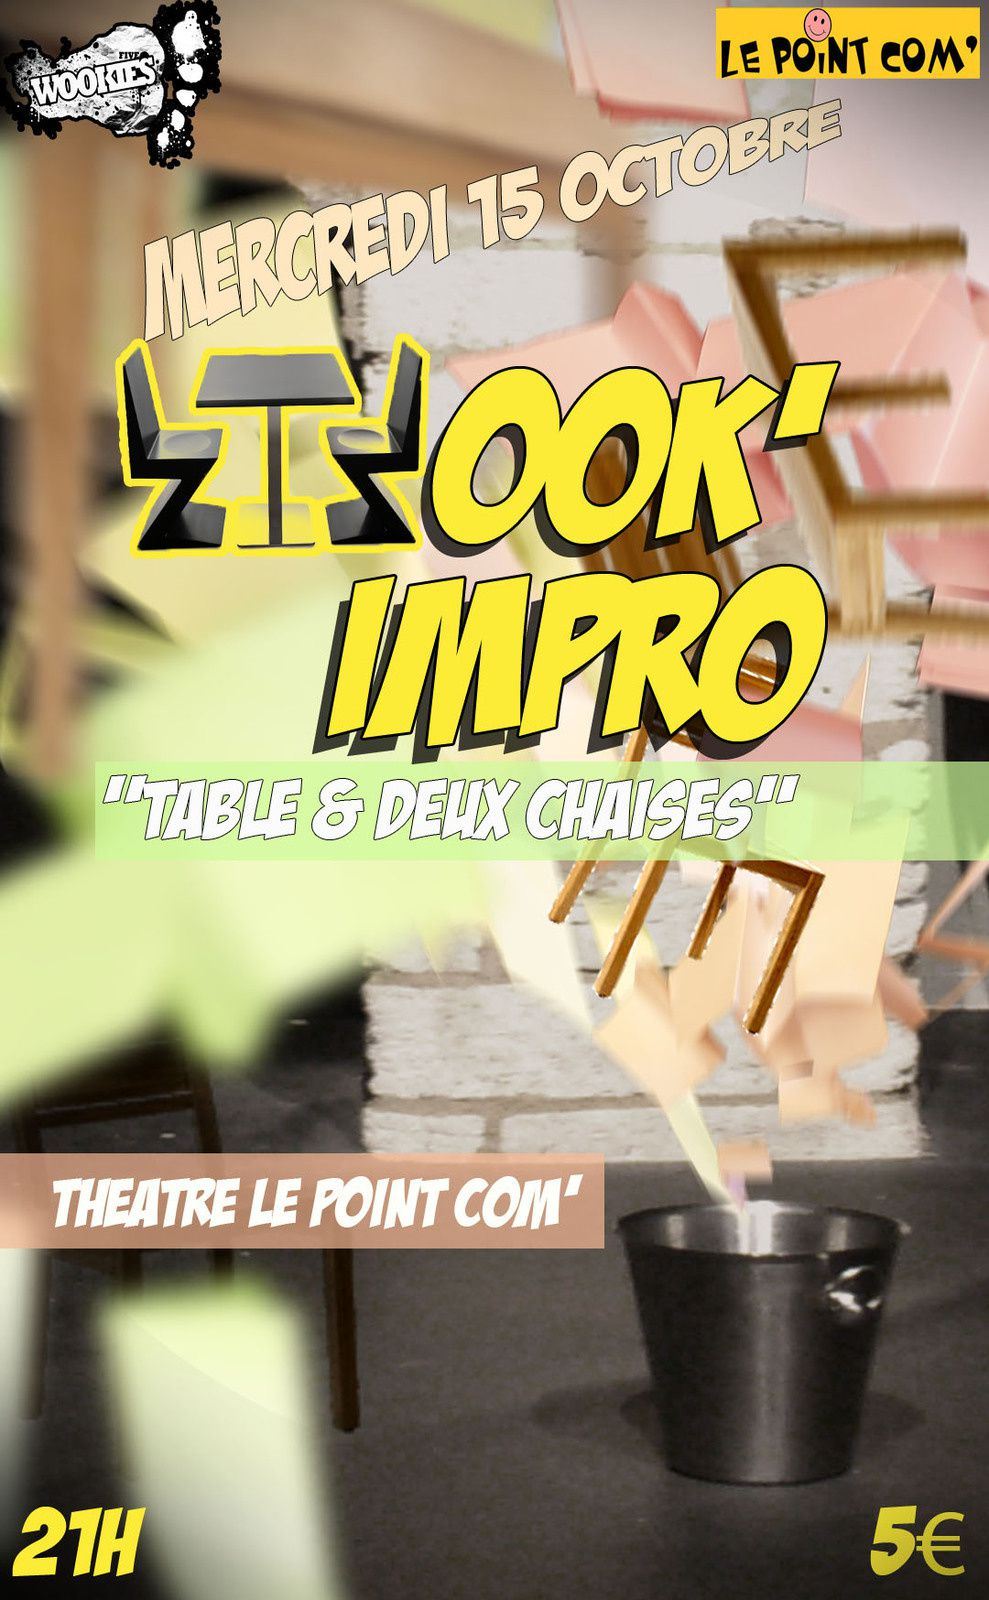 WOOK'IMPRO: Table &amp&#x3B; Chaises